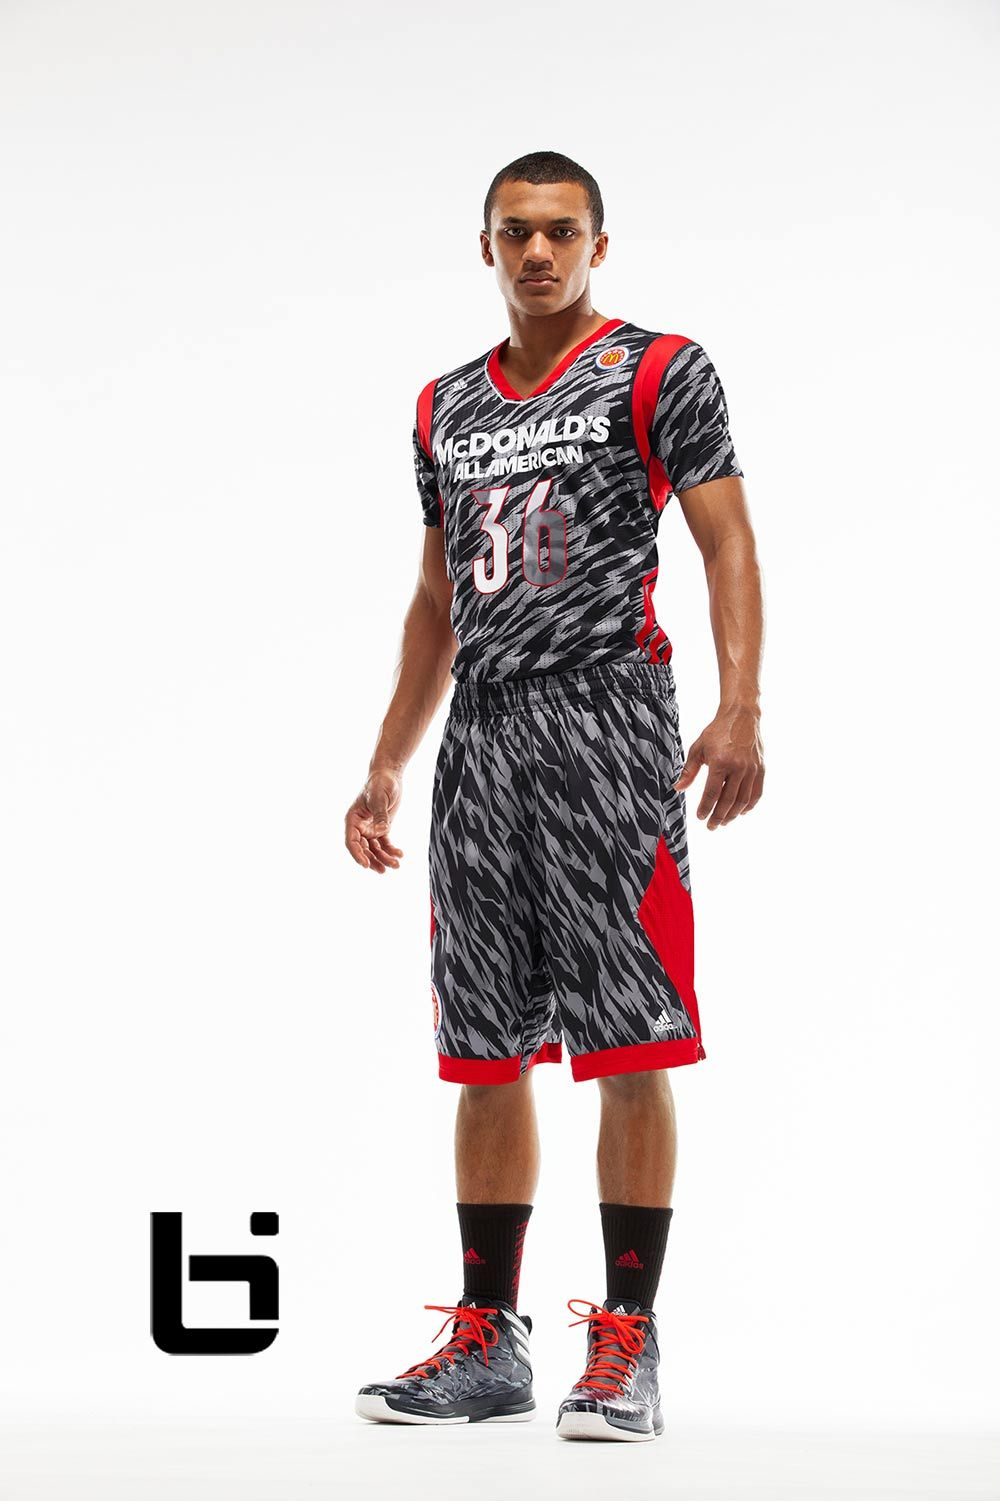 various colors 6fd28 531d7 Adidas McDonalds All-American Jerseys